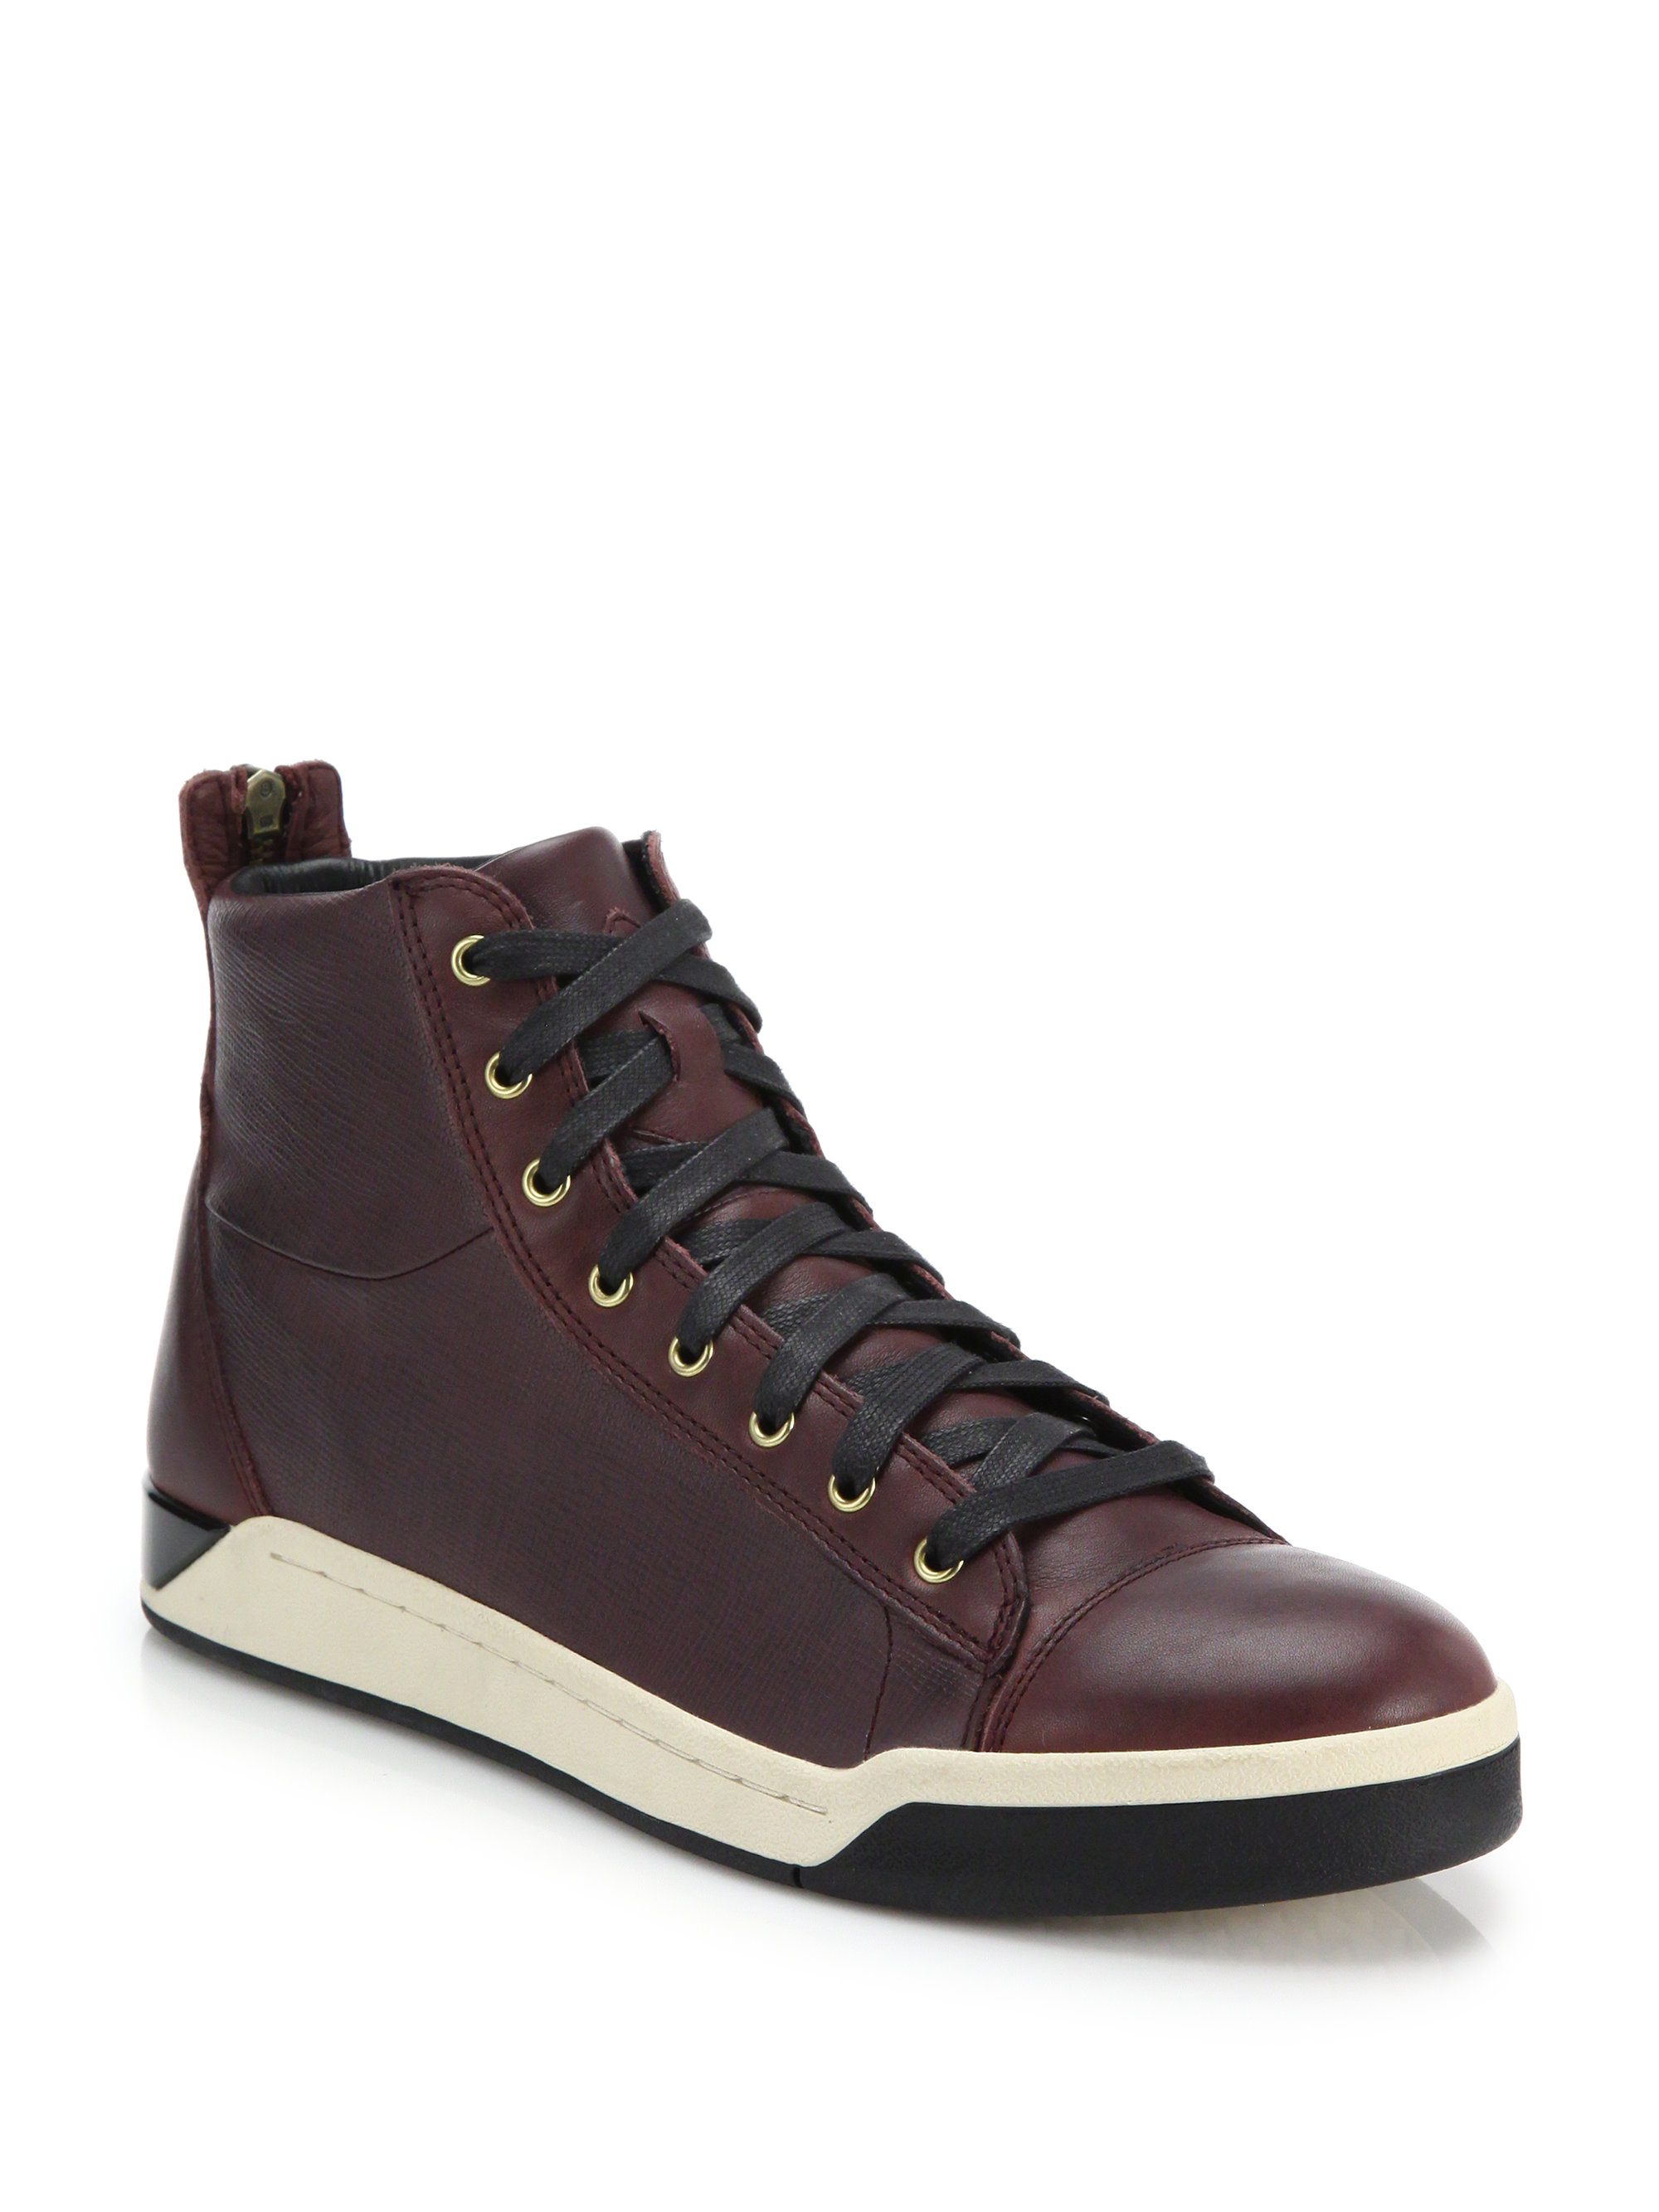 8ad8a9e7f6 Lyst - DIESEL Tempus Diamond Leather High-top Sneakers in Brown for Men